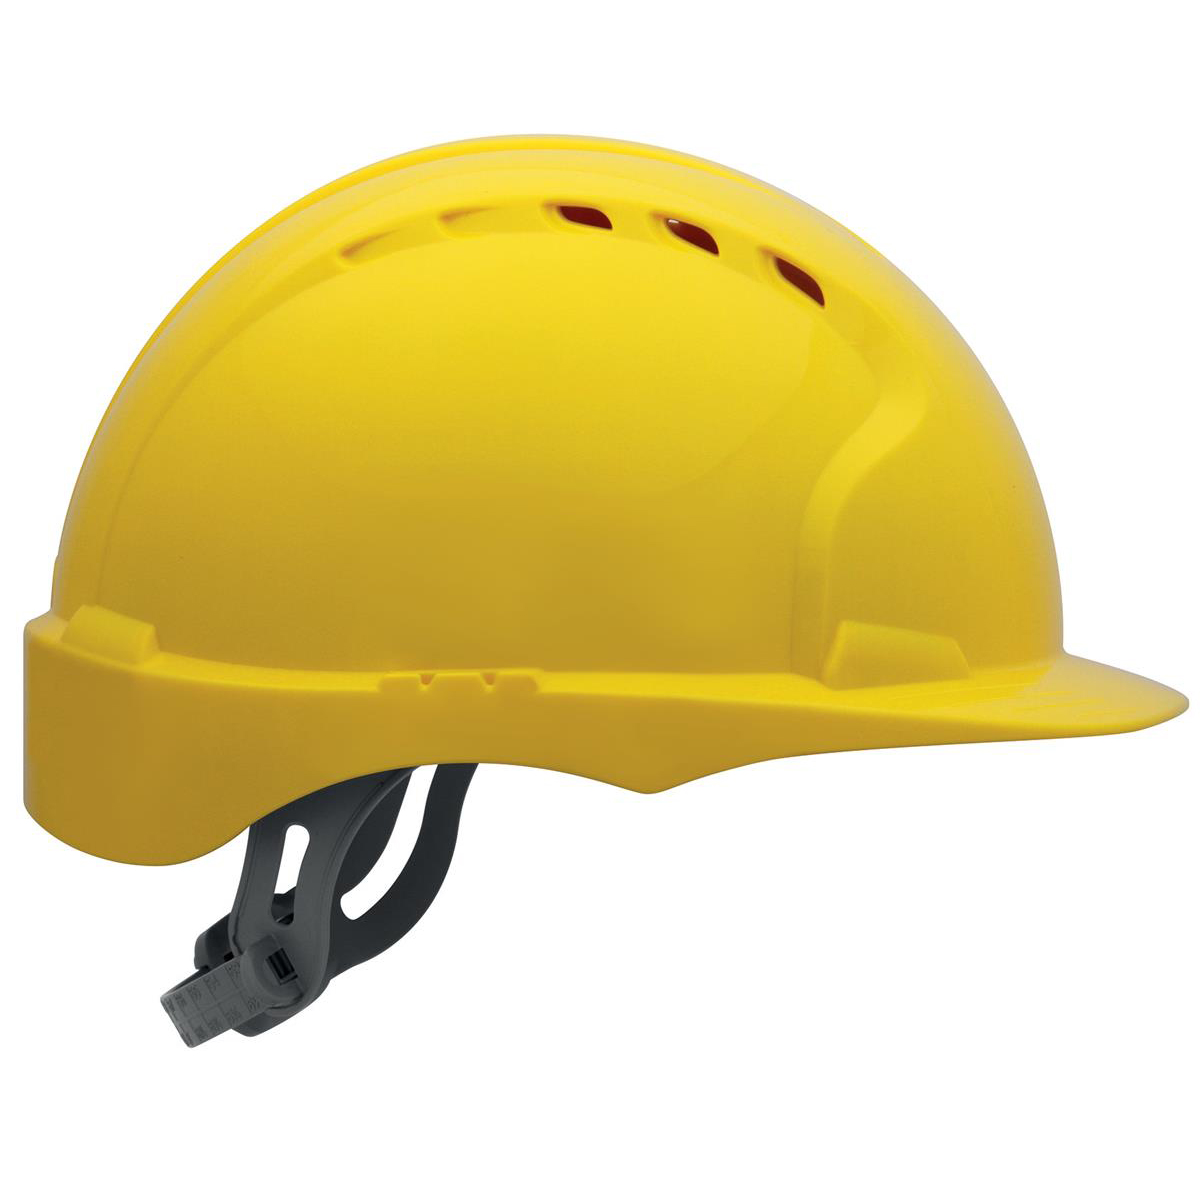 JSP EVO2 Safety Helmet HDPE 6-point Polyethylene Harness EN397 Standard Yellow Ref AJF030-000-200